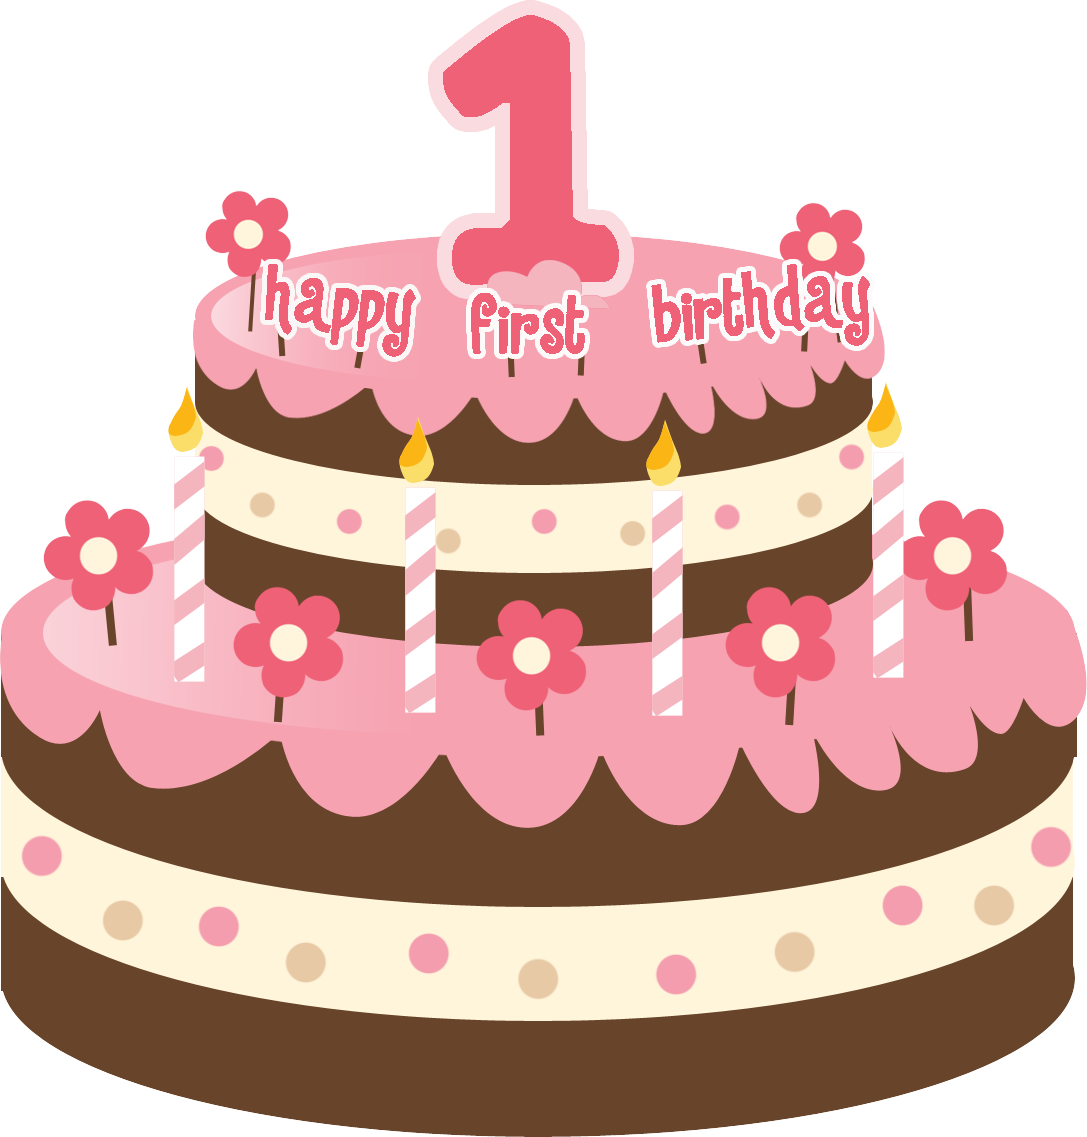 Birthday Cake Clipart PNG Image